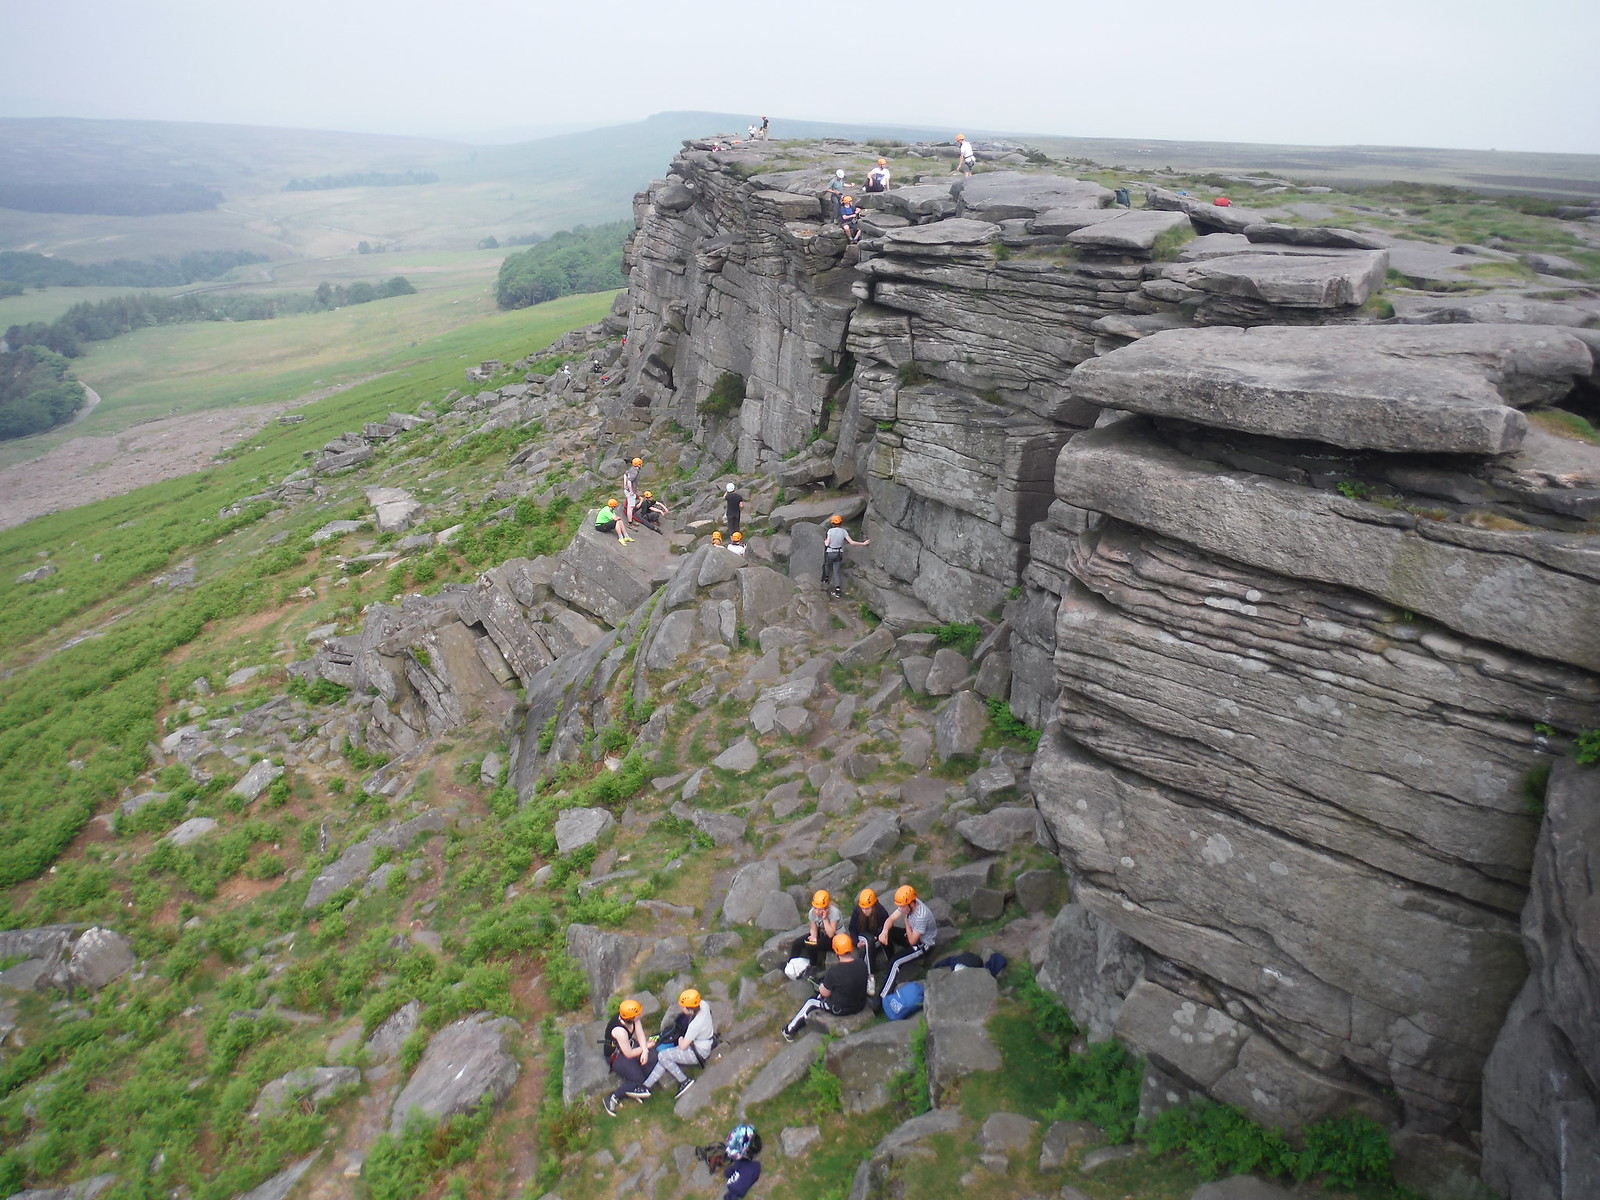 Rockclimbers, Stanage Edge SWC Walk 266 - Sheffield to Bamford (via Burbage Rocks and Stanage Edge) or to Moscar Lodge